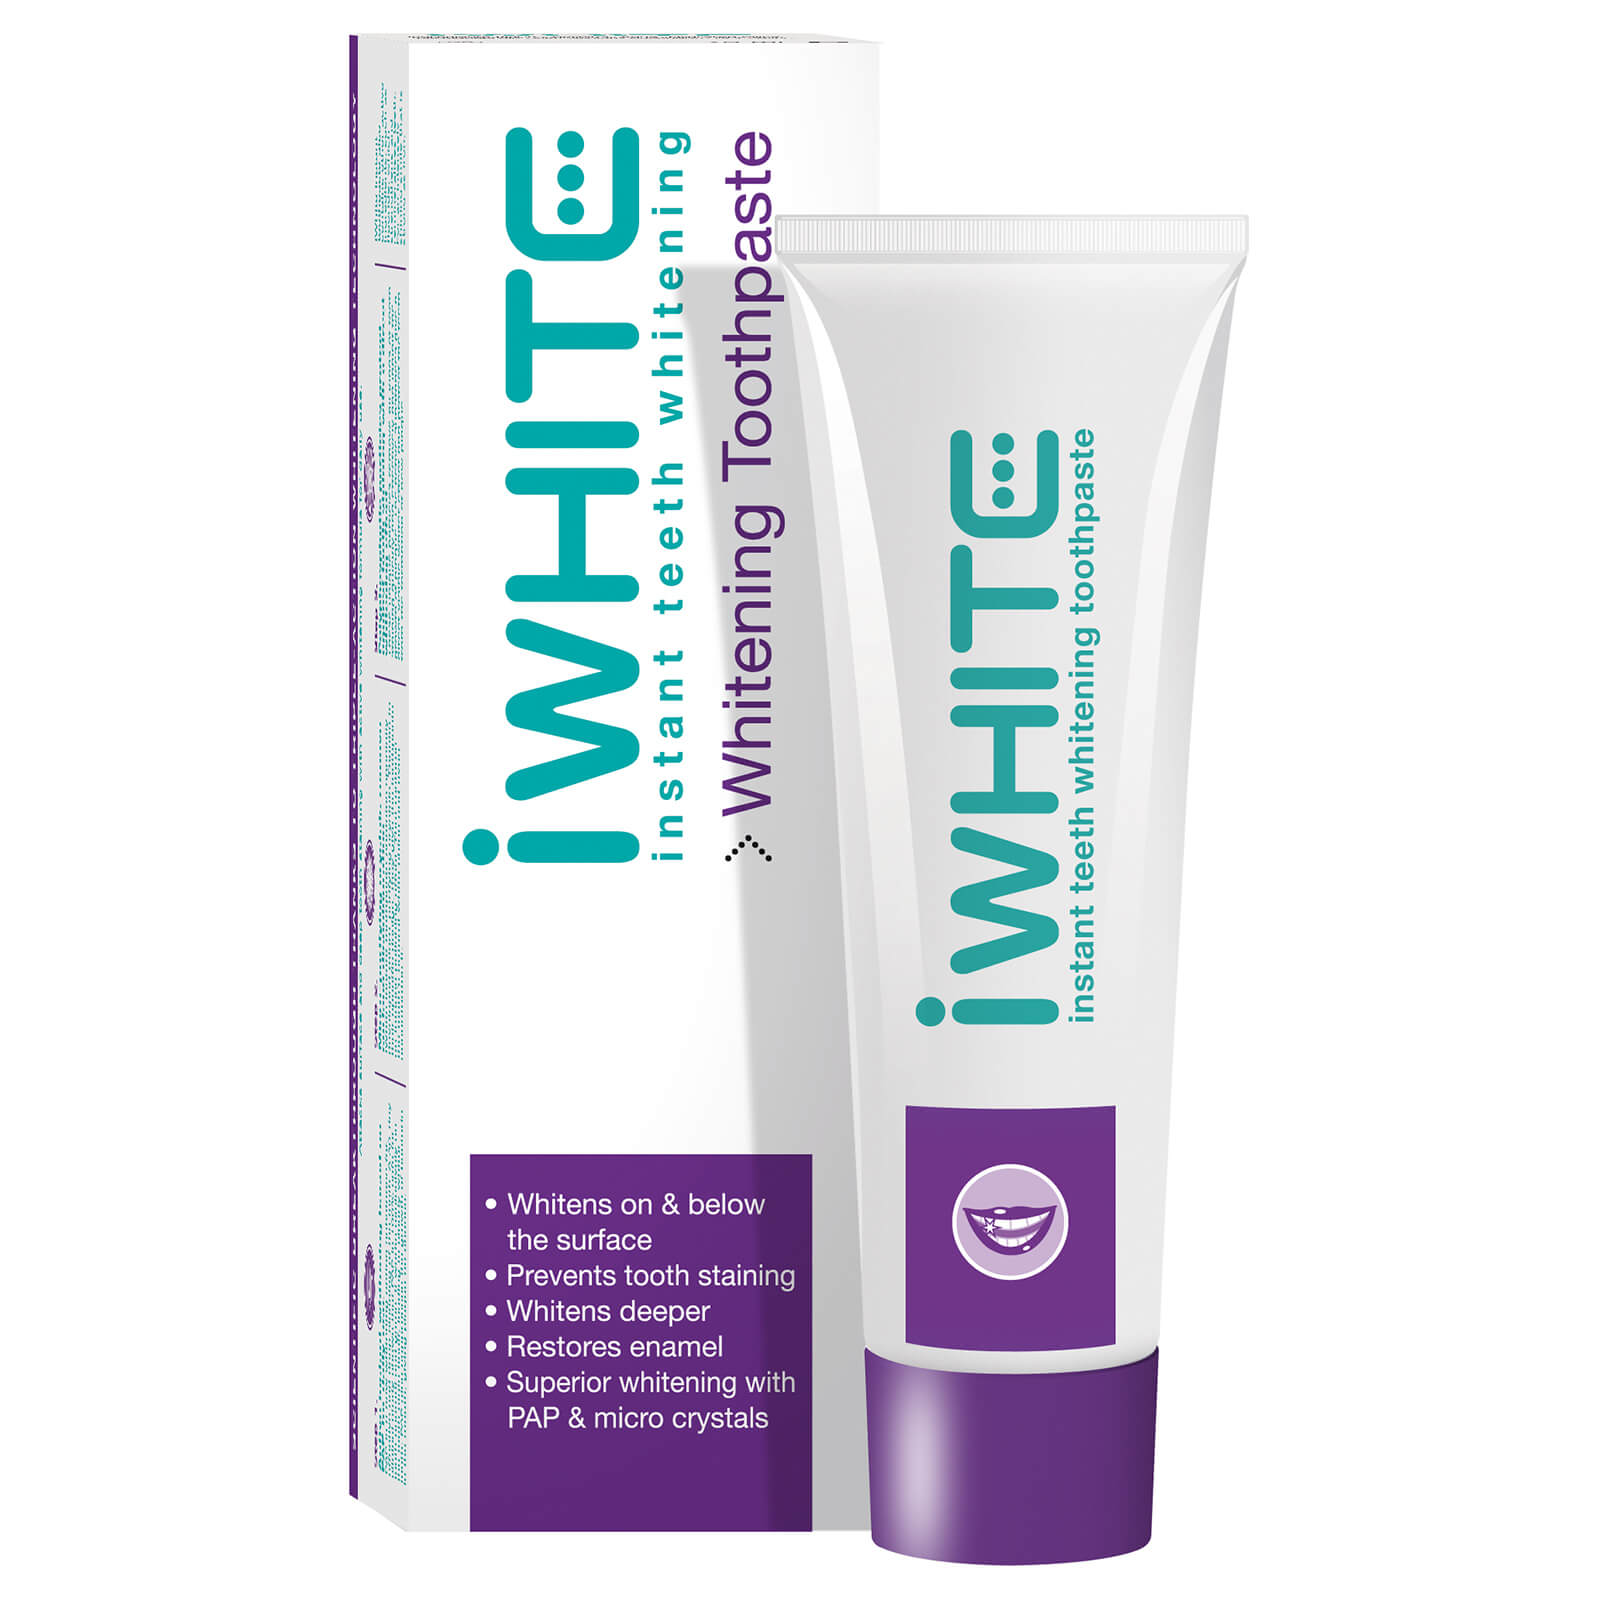 Dentífrico blanqueante instantáneo iWhite